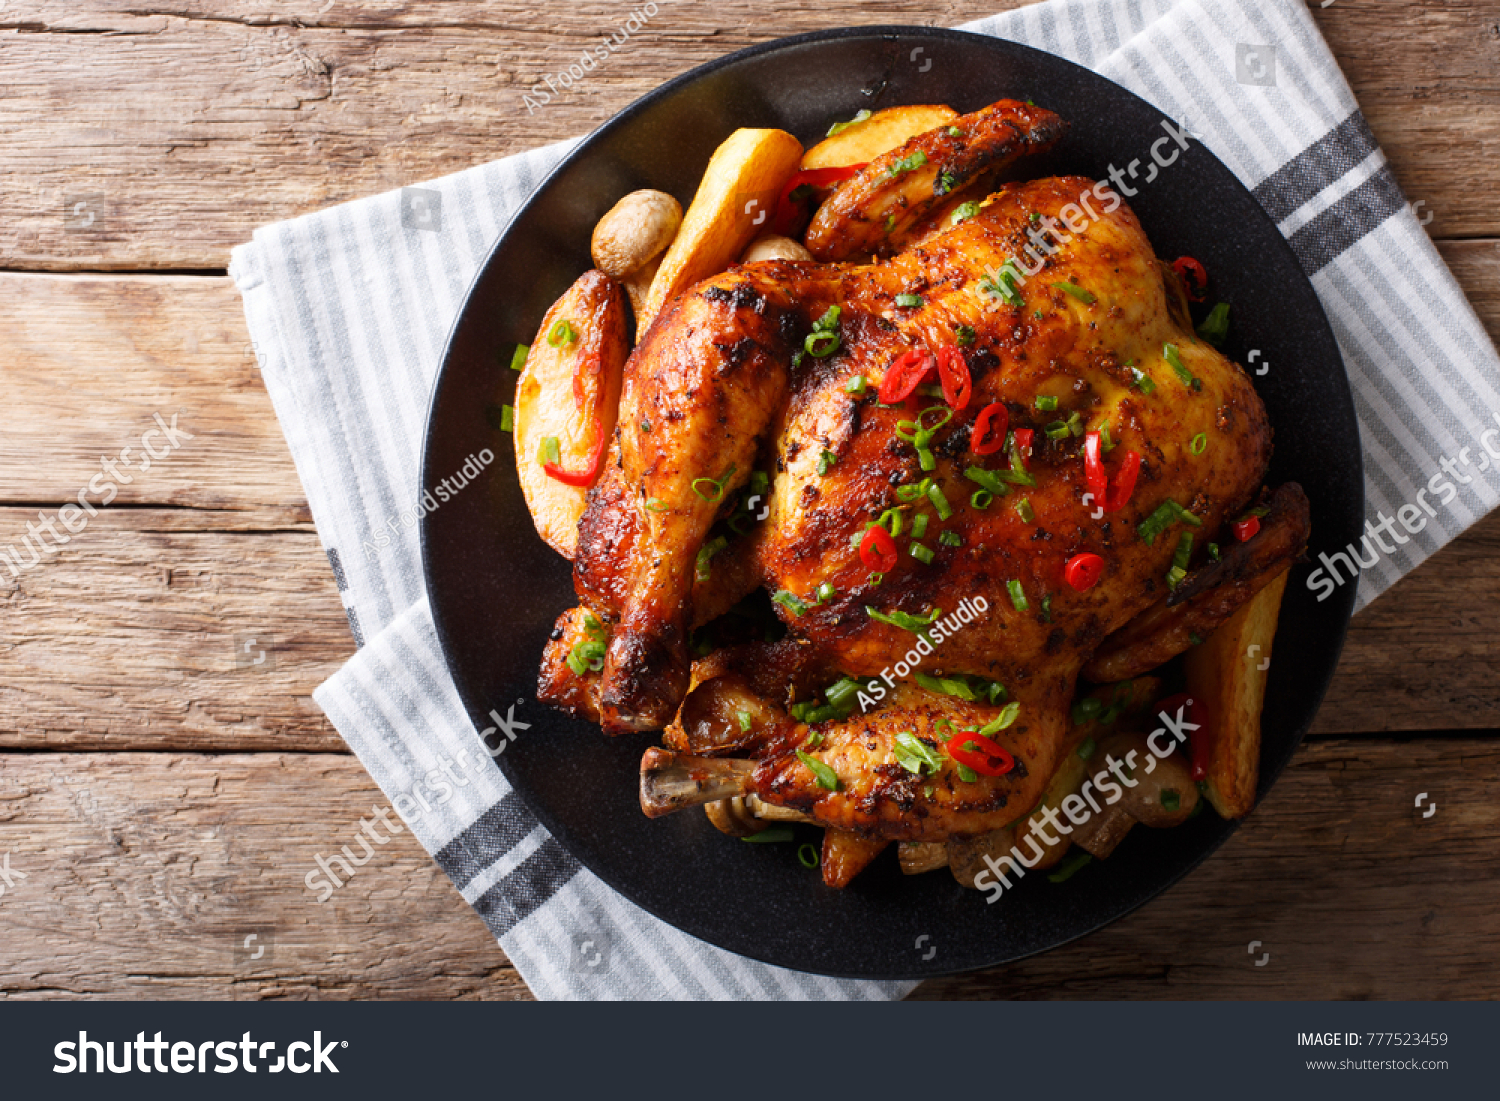 Baked whole chicken with mushrooms and potatoes close-up on a plate on a table. Horizontal top view from above #777523459